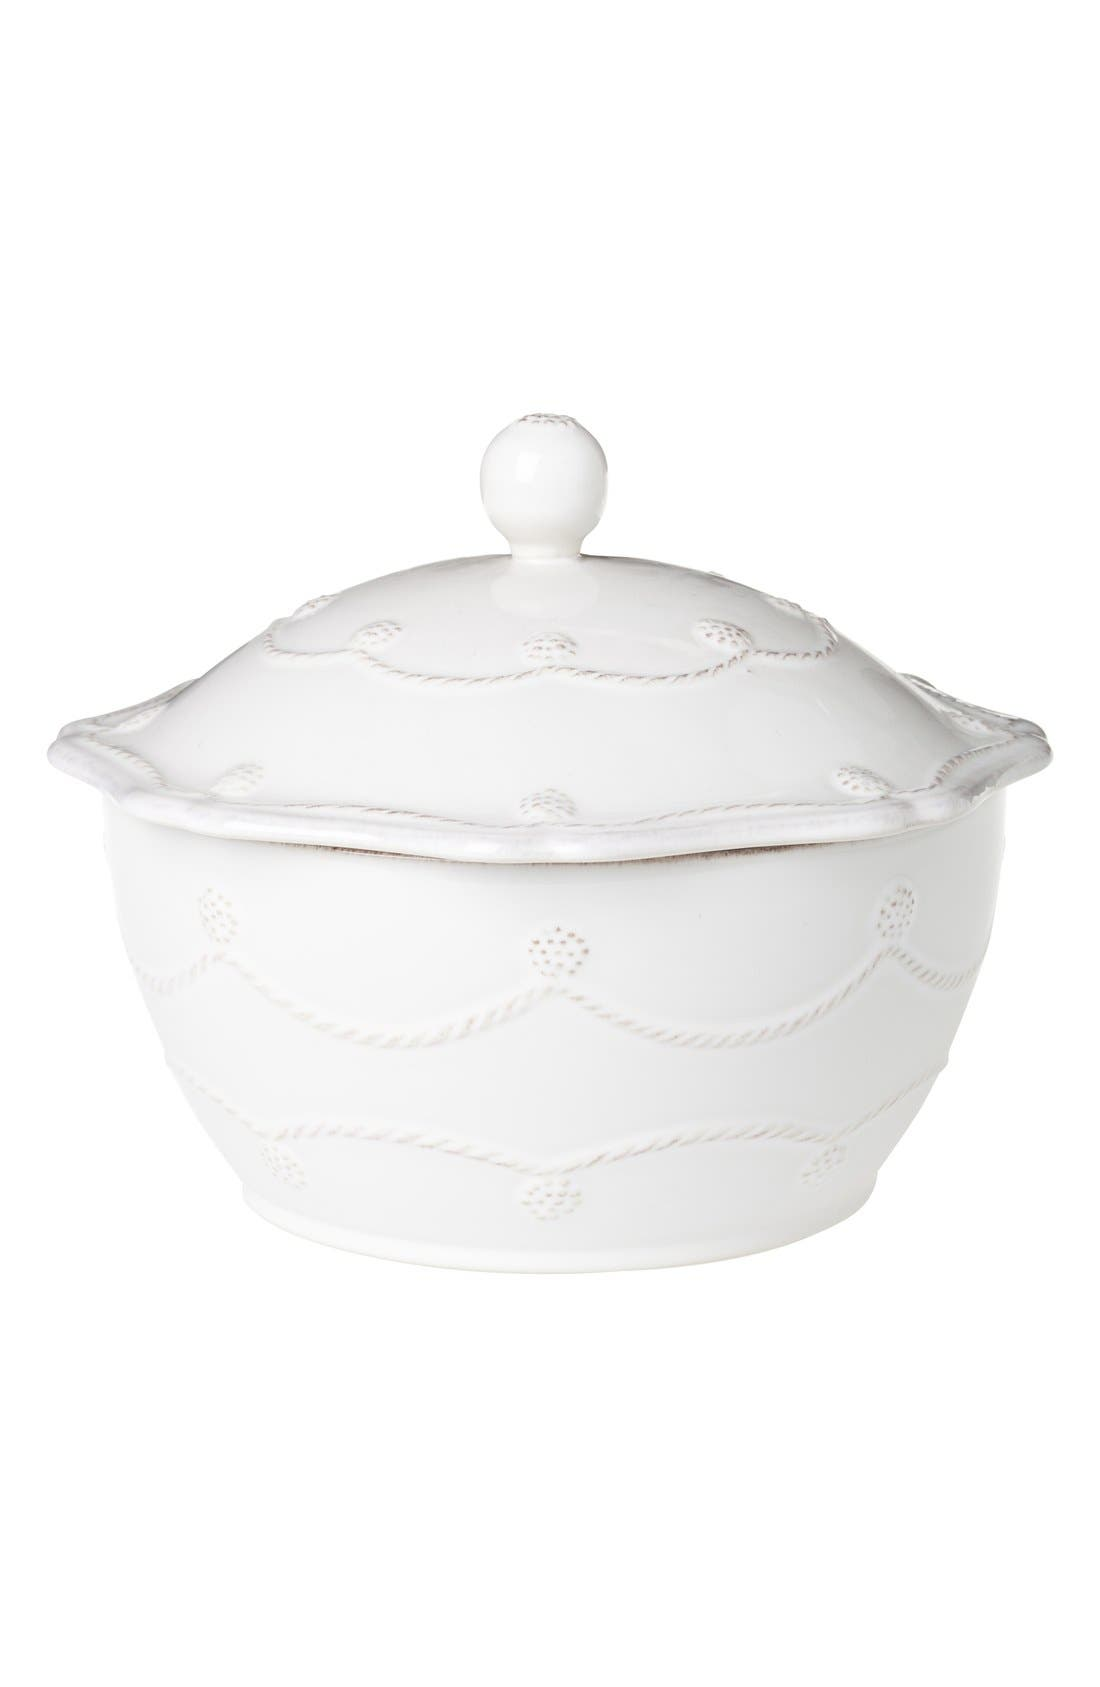 JULISKA 'Berry and Thread' Casserole Dish with Lid